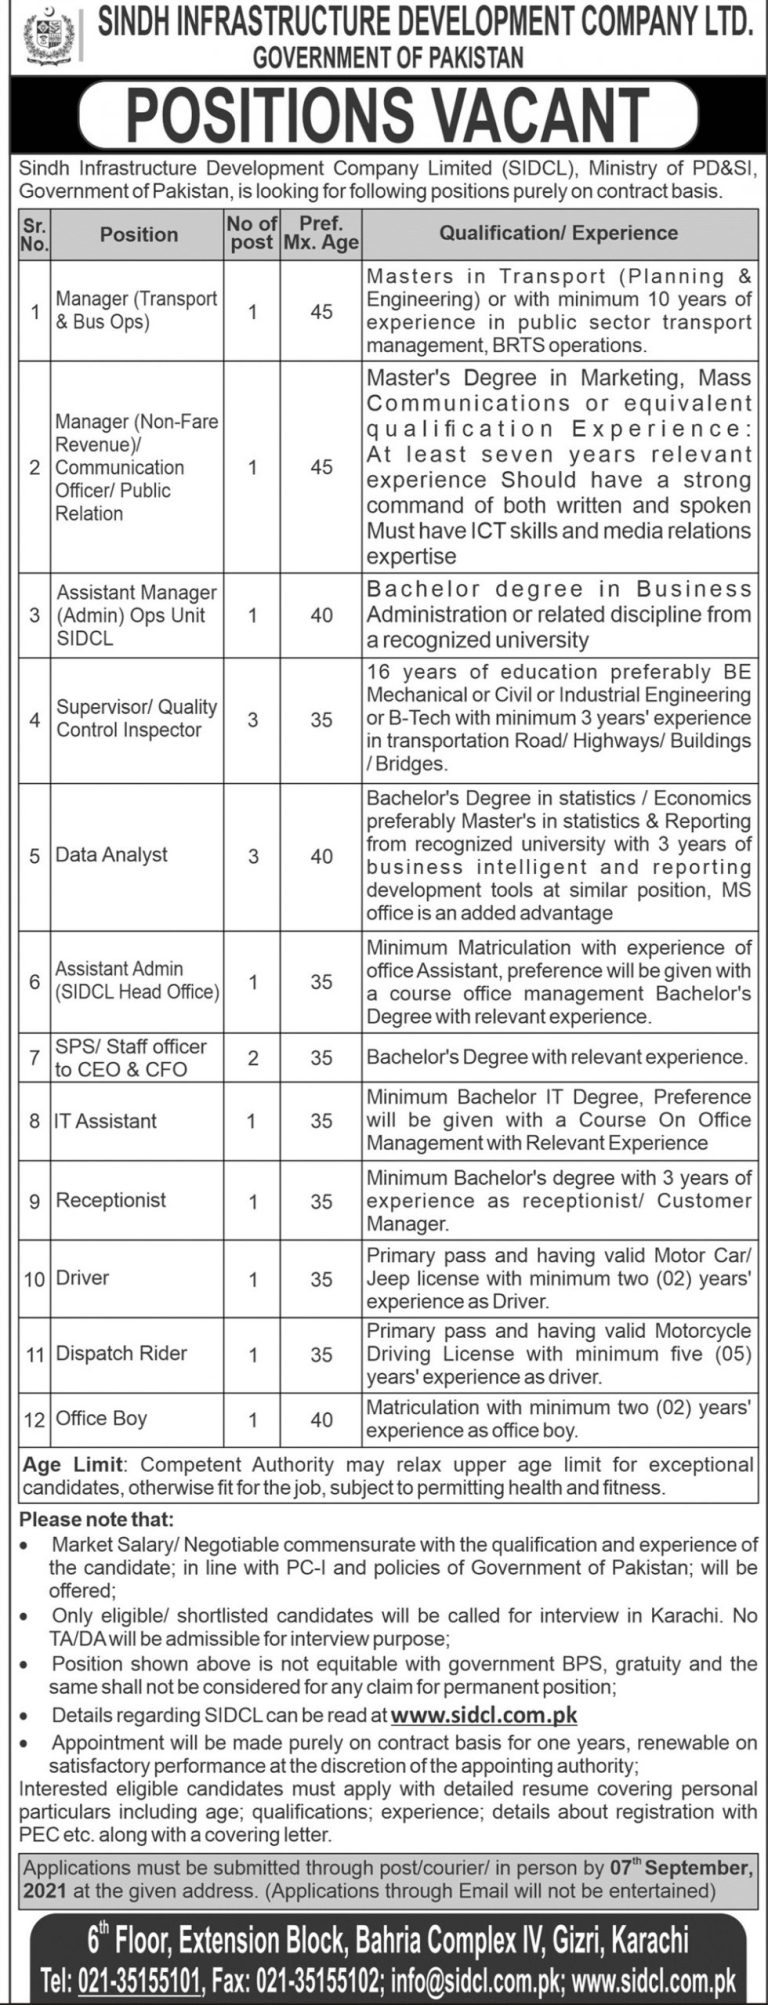 www.sidcl.com.pk Jobs 2021 - Sindh Infrastructure Development Company Limited SIDCL Jobs 2021 in Pakistan